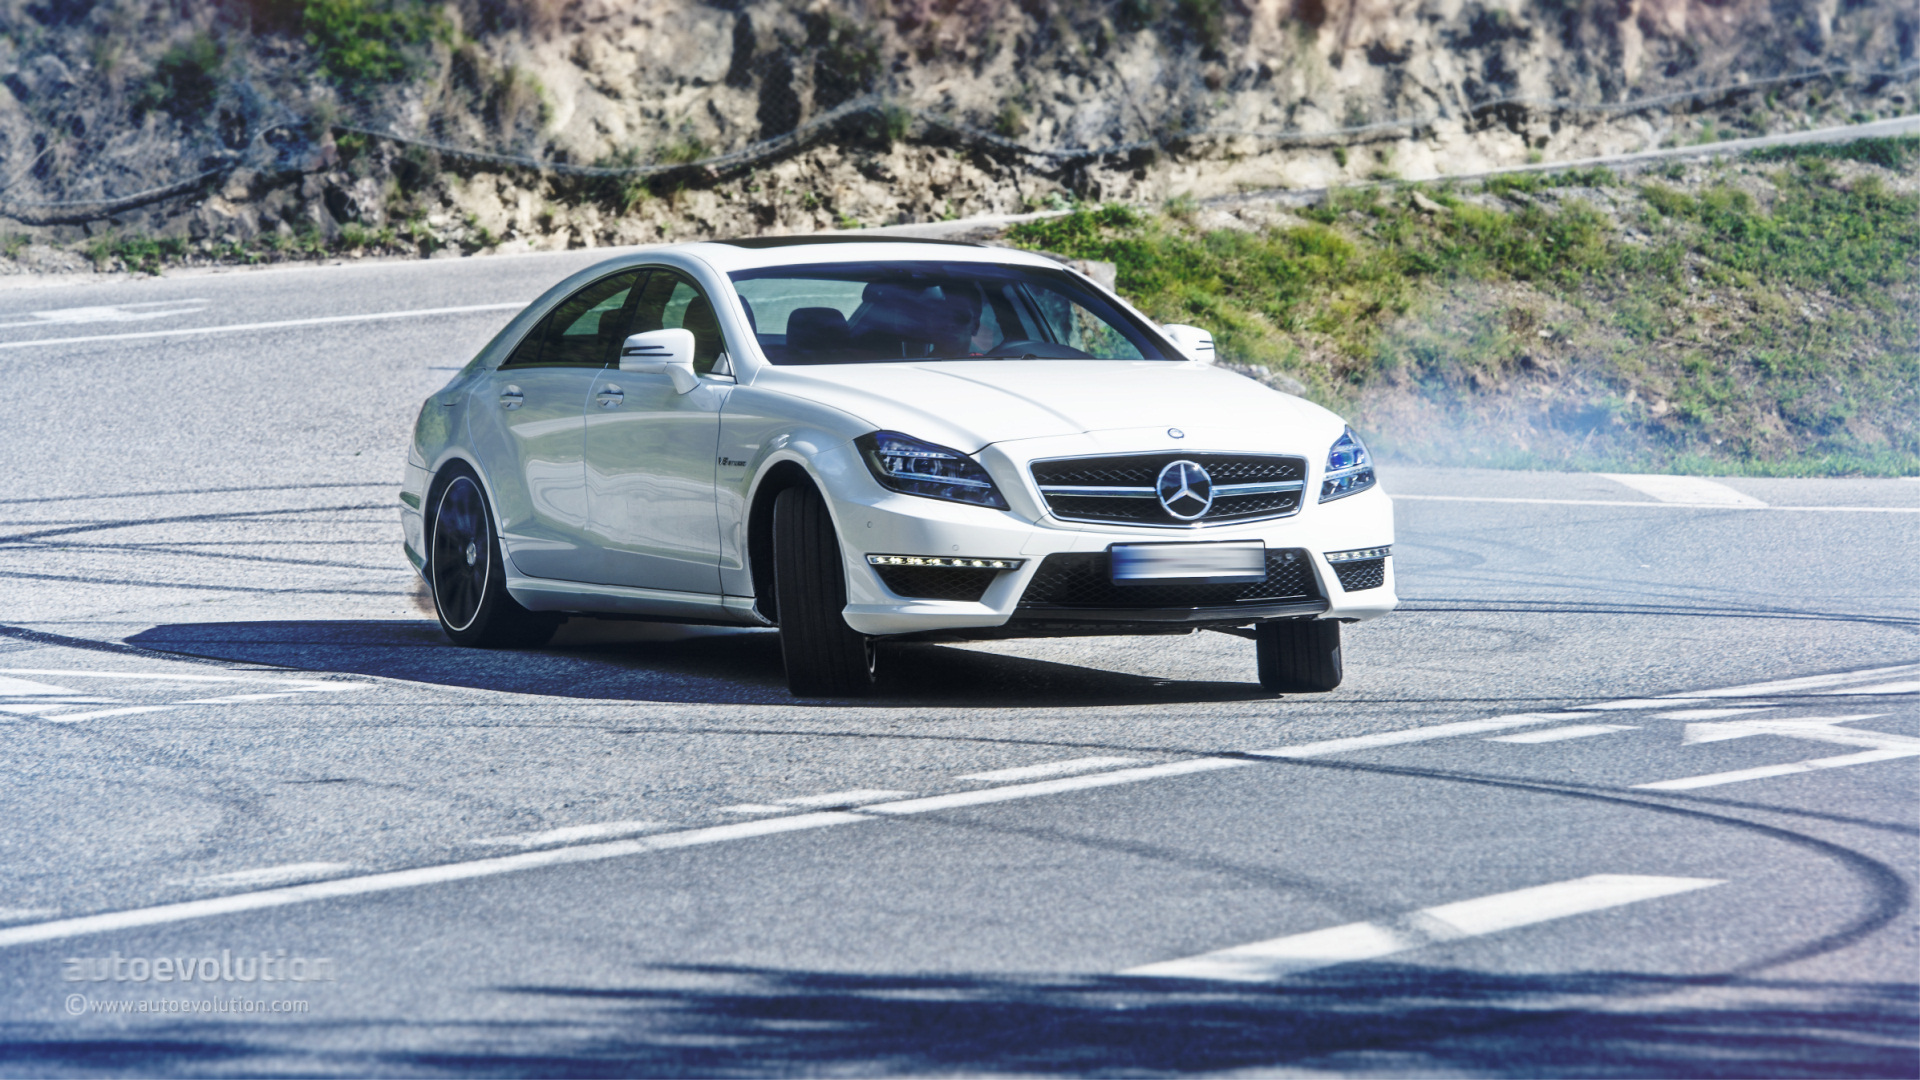 2014 MERCEDES-BENZ CLS63 AMG 4Matic Review - autoevolution